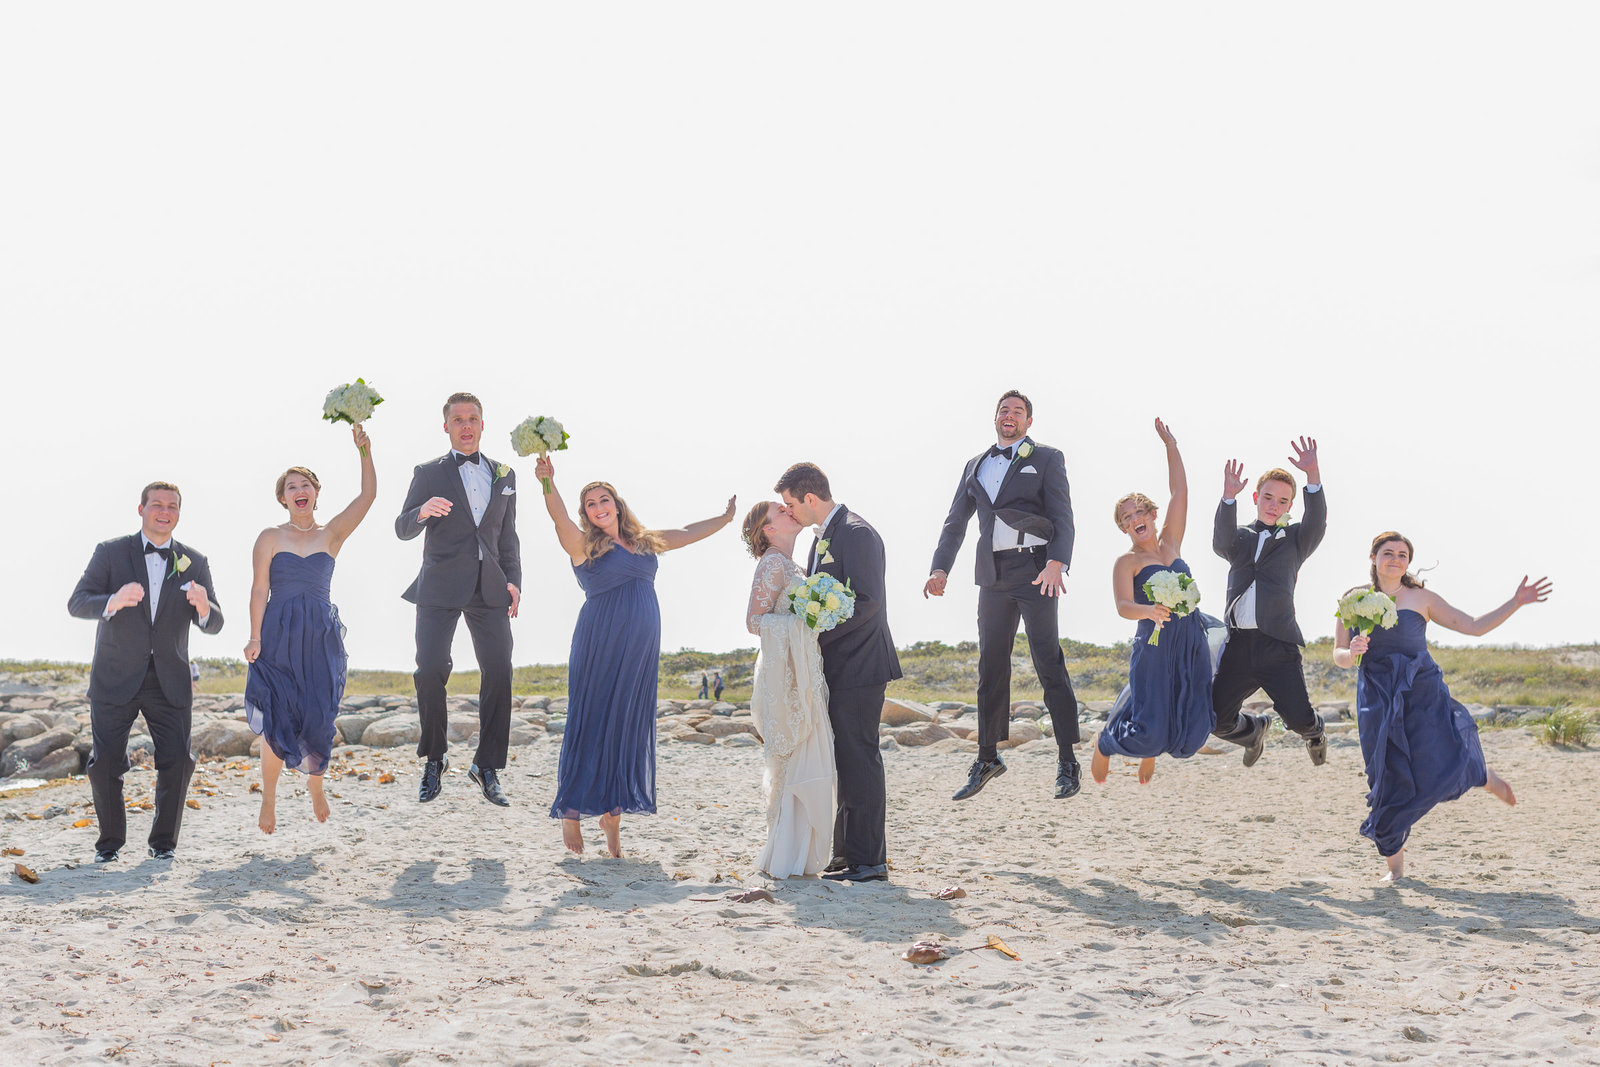 ThompsonIsland_BostonWeddingPhotographer_CapeCodWeddingPhotography_MichelleKayePhotography-6